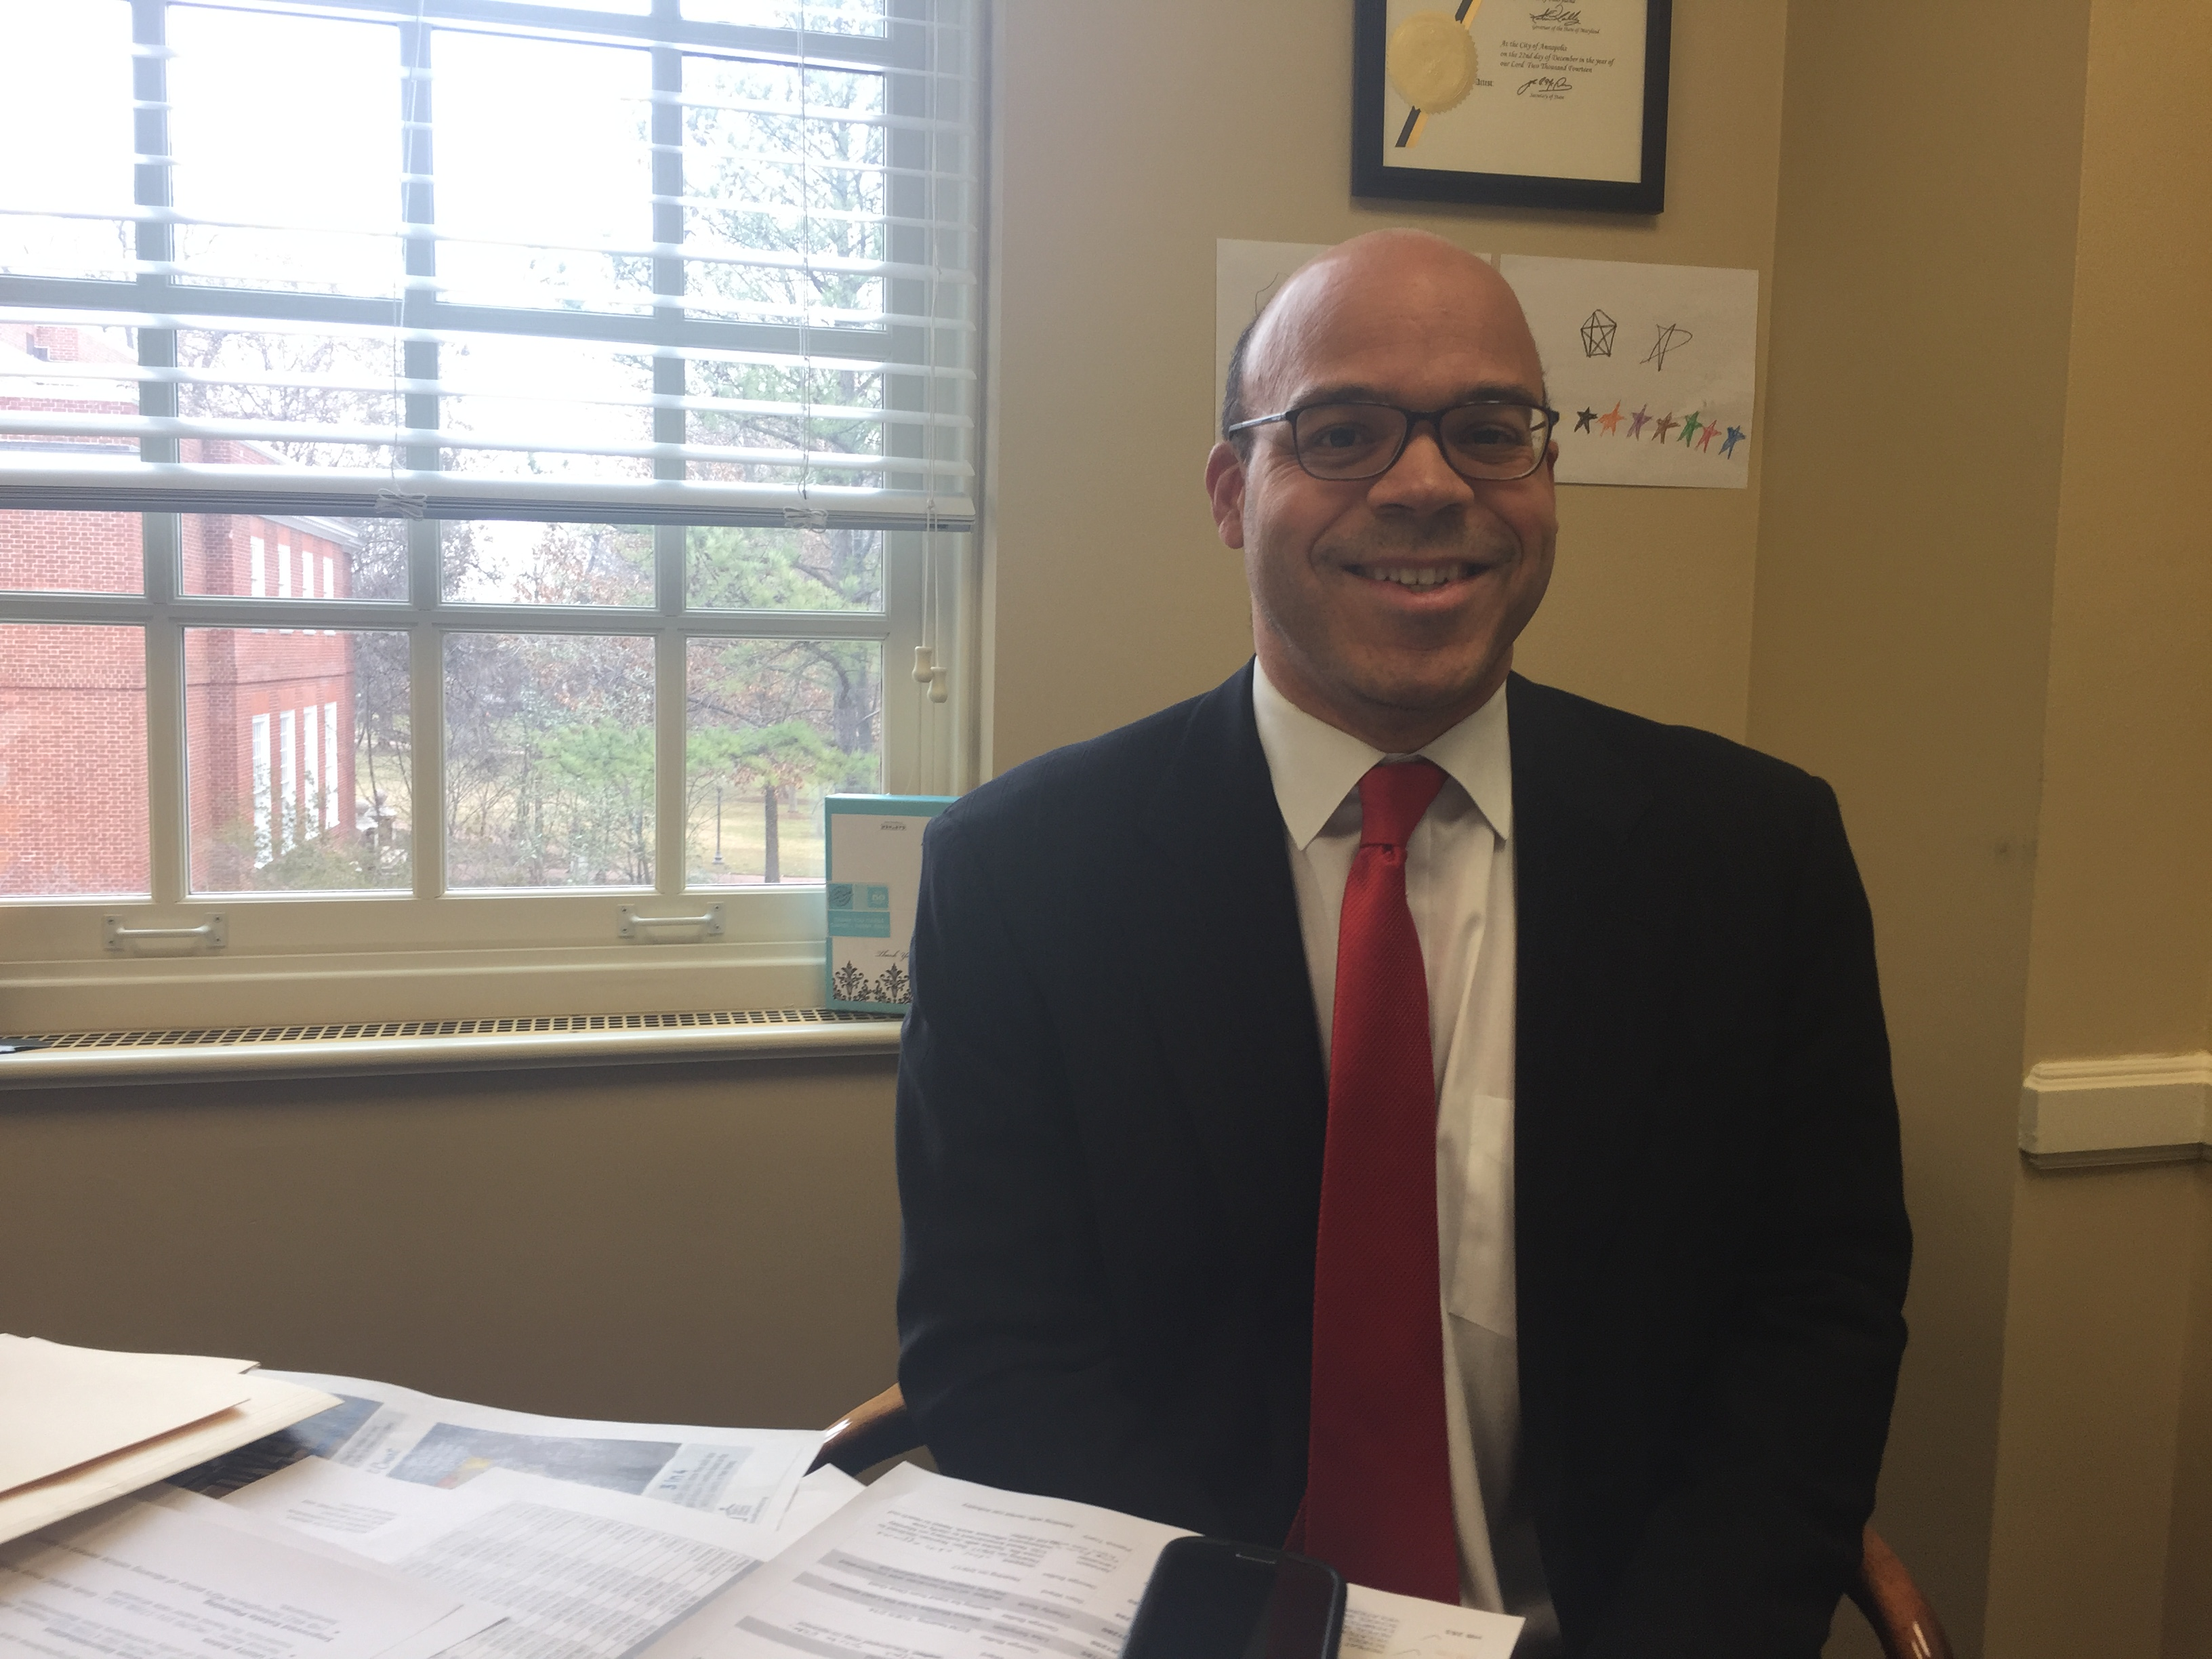 Delegate Al Carr, D-Montgomery, in his office in Annapolis. Carr is sponsoring two bills in the 2017 session related to cameras on the outside of school buses. The number of motorists who drive around stopped buses has been increasing in Montgomery County. (Capital News Service photo by Cara Newcomer)